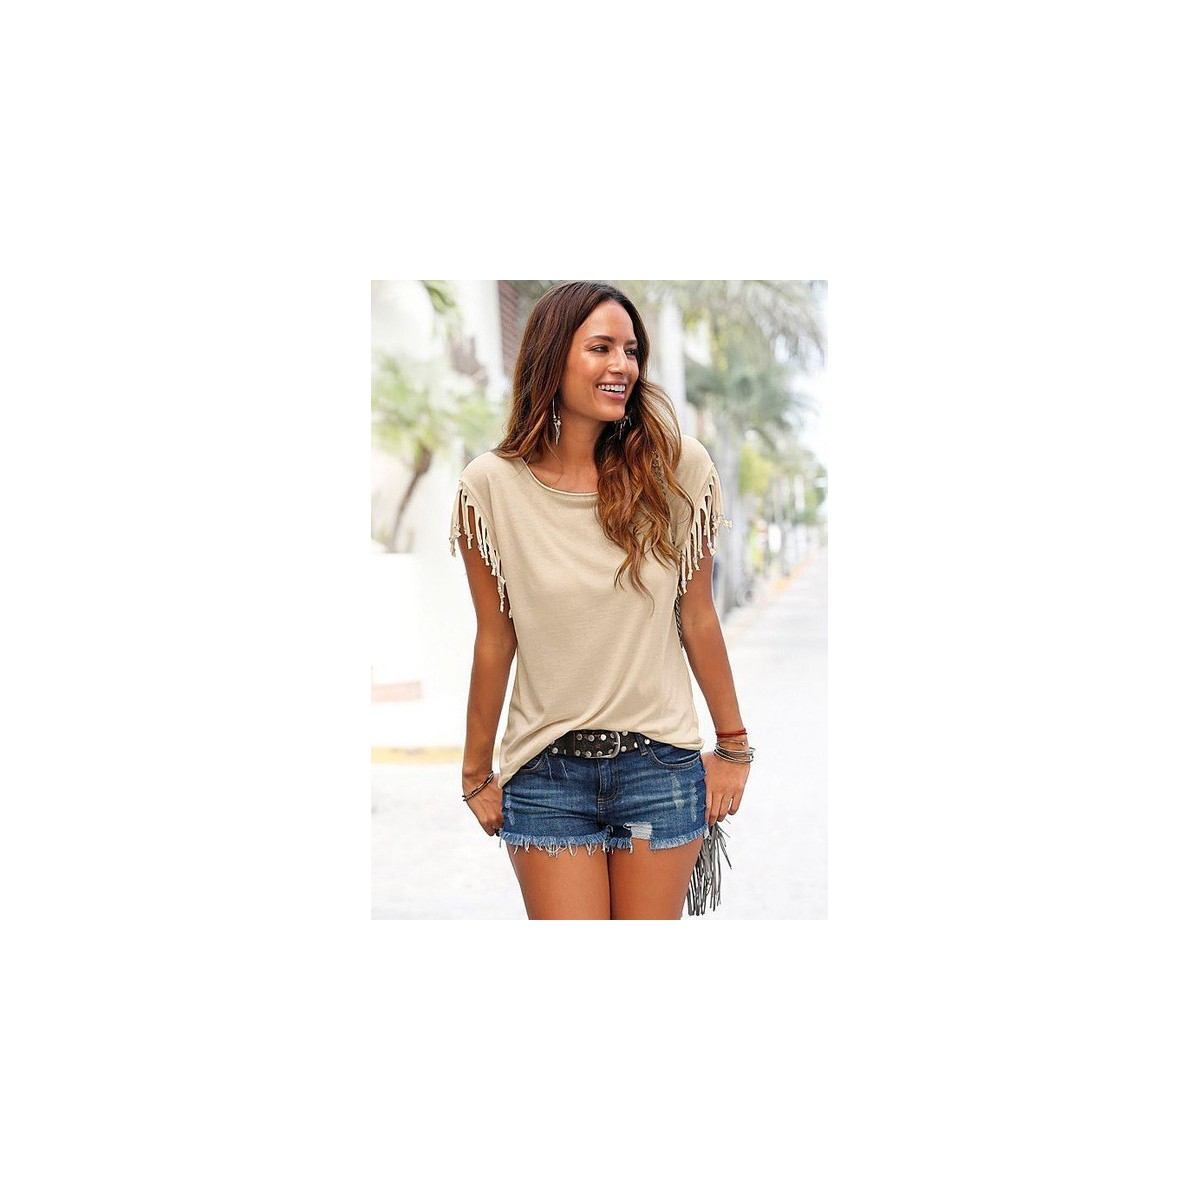 Trendiges T-shirt Casual Style ärmellos Woman